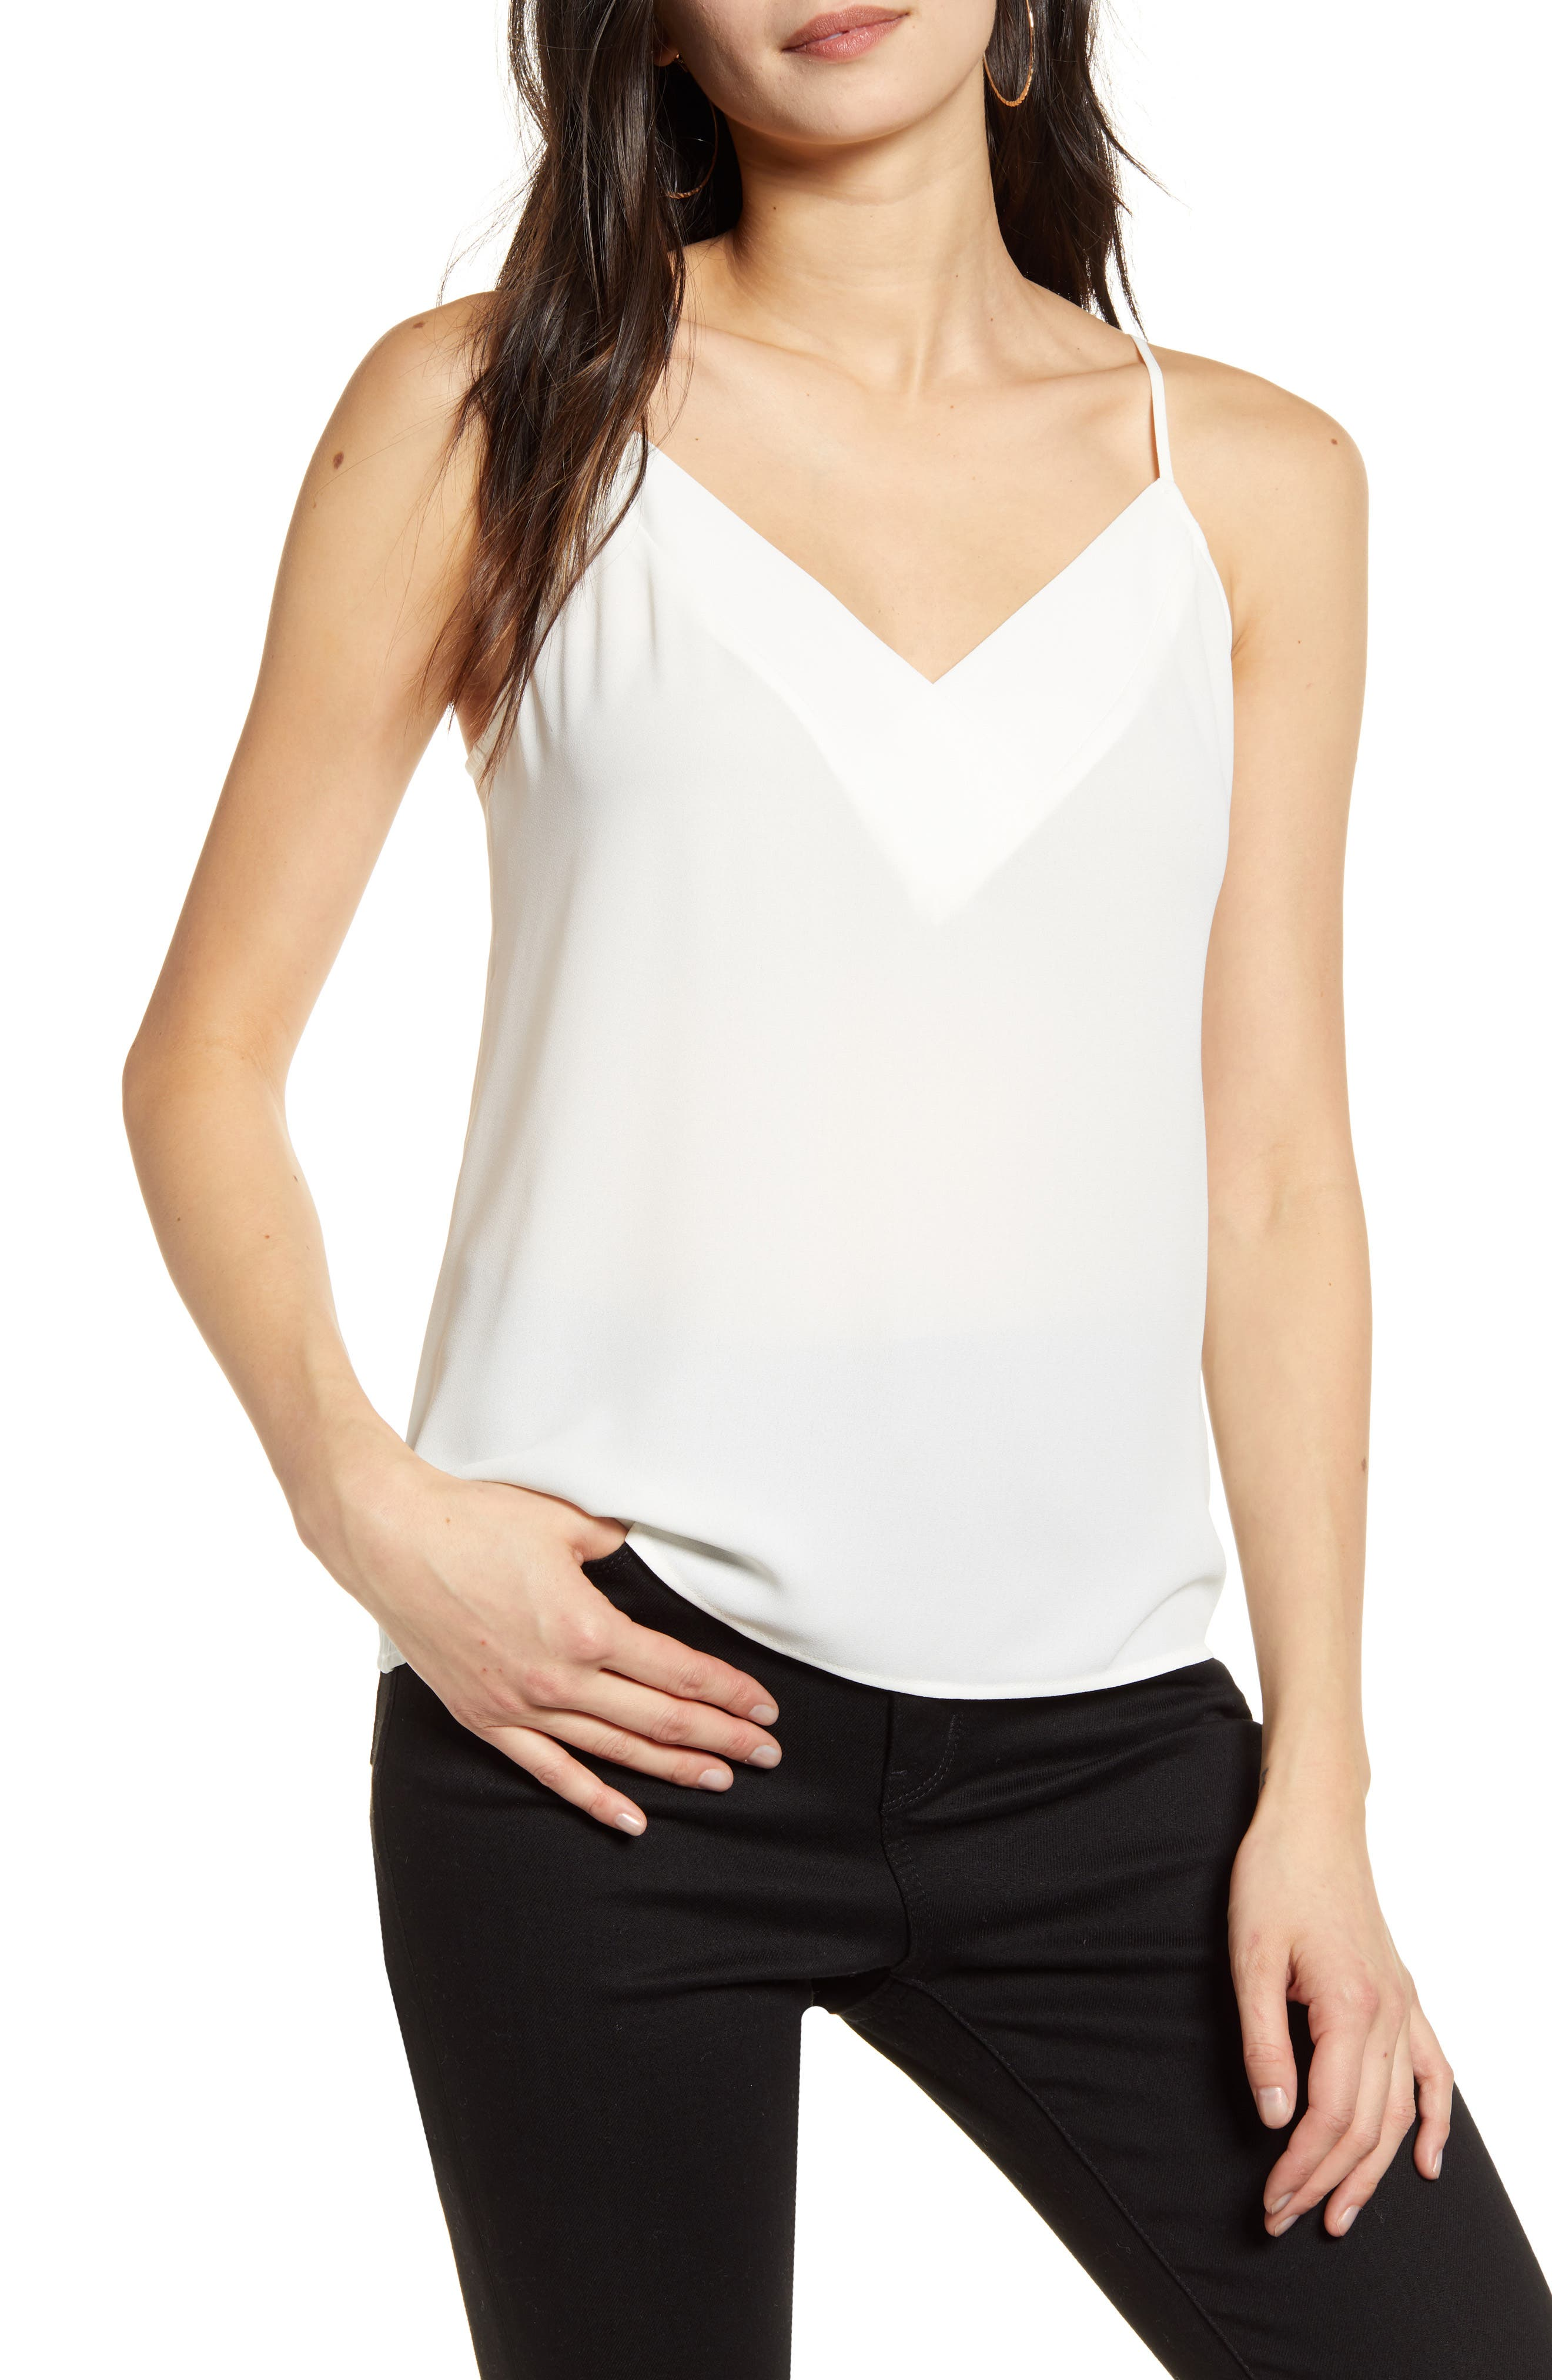 A tonal crossover panel at the neckline elevates a breezy camisole perfect for layering or wearing alone while you\\\'re grabbing dinner with friends. Style Name: Chelsea28 Crossover Camisole. Style Number: 5815751 1. Available in stores.